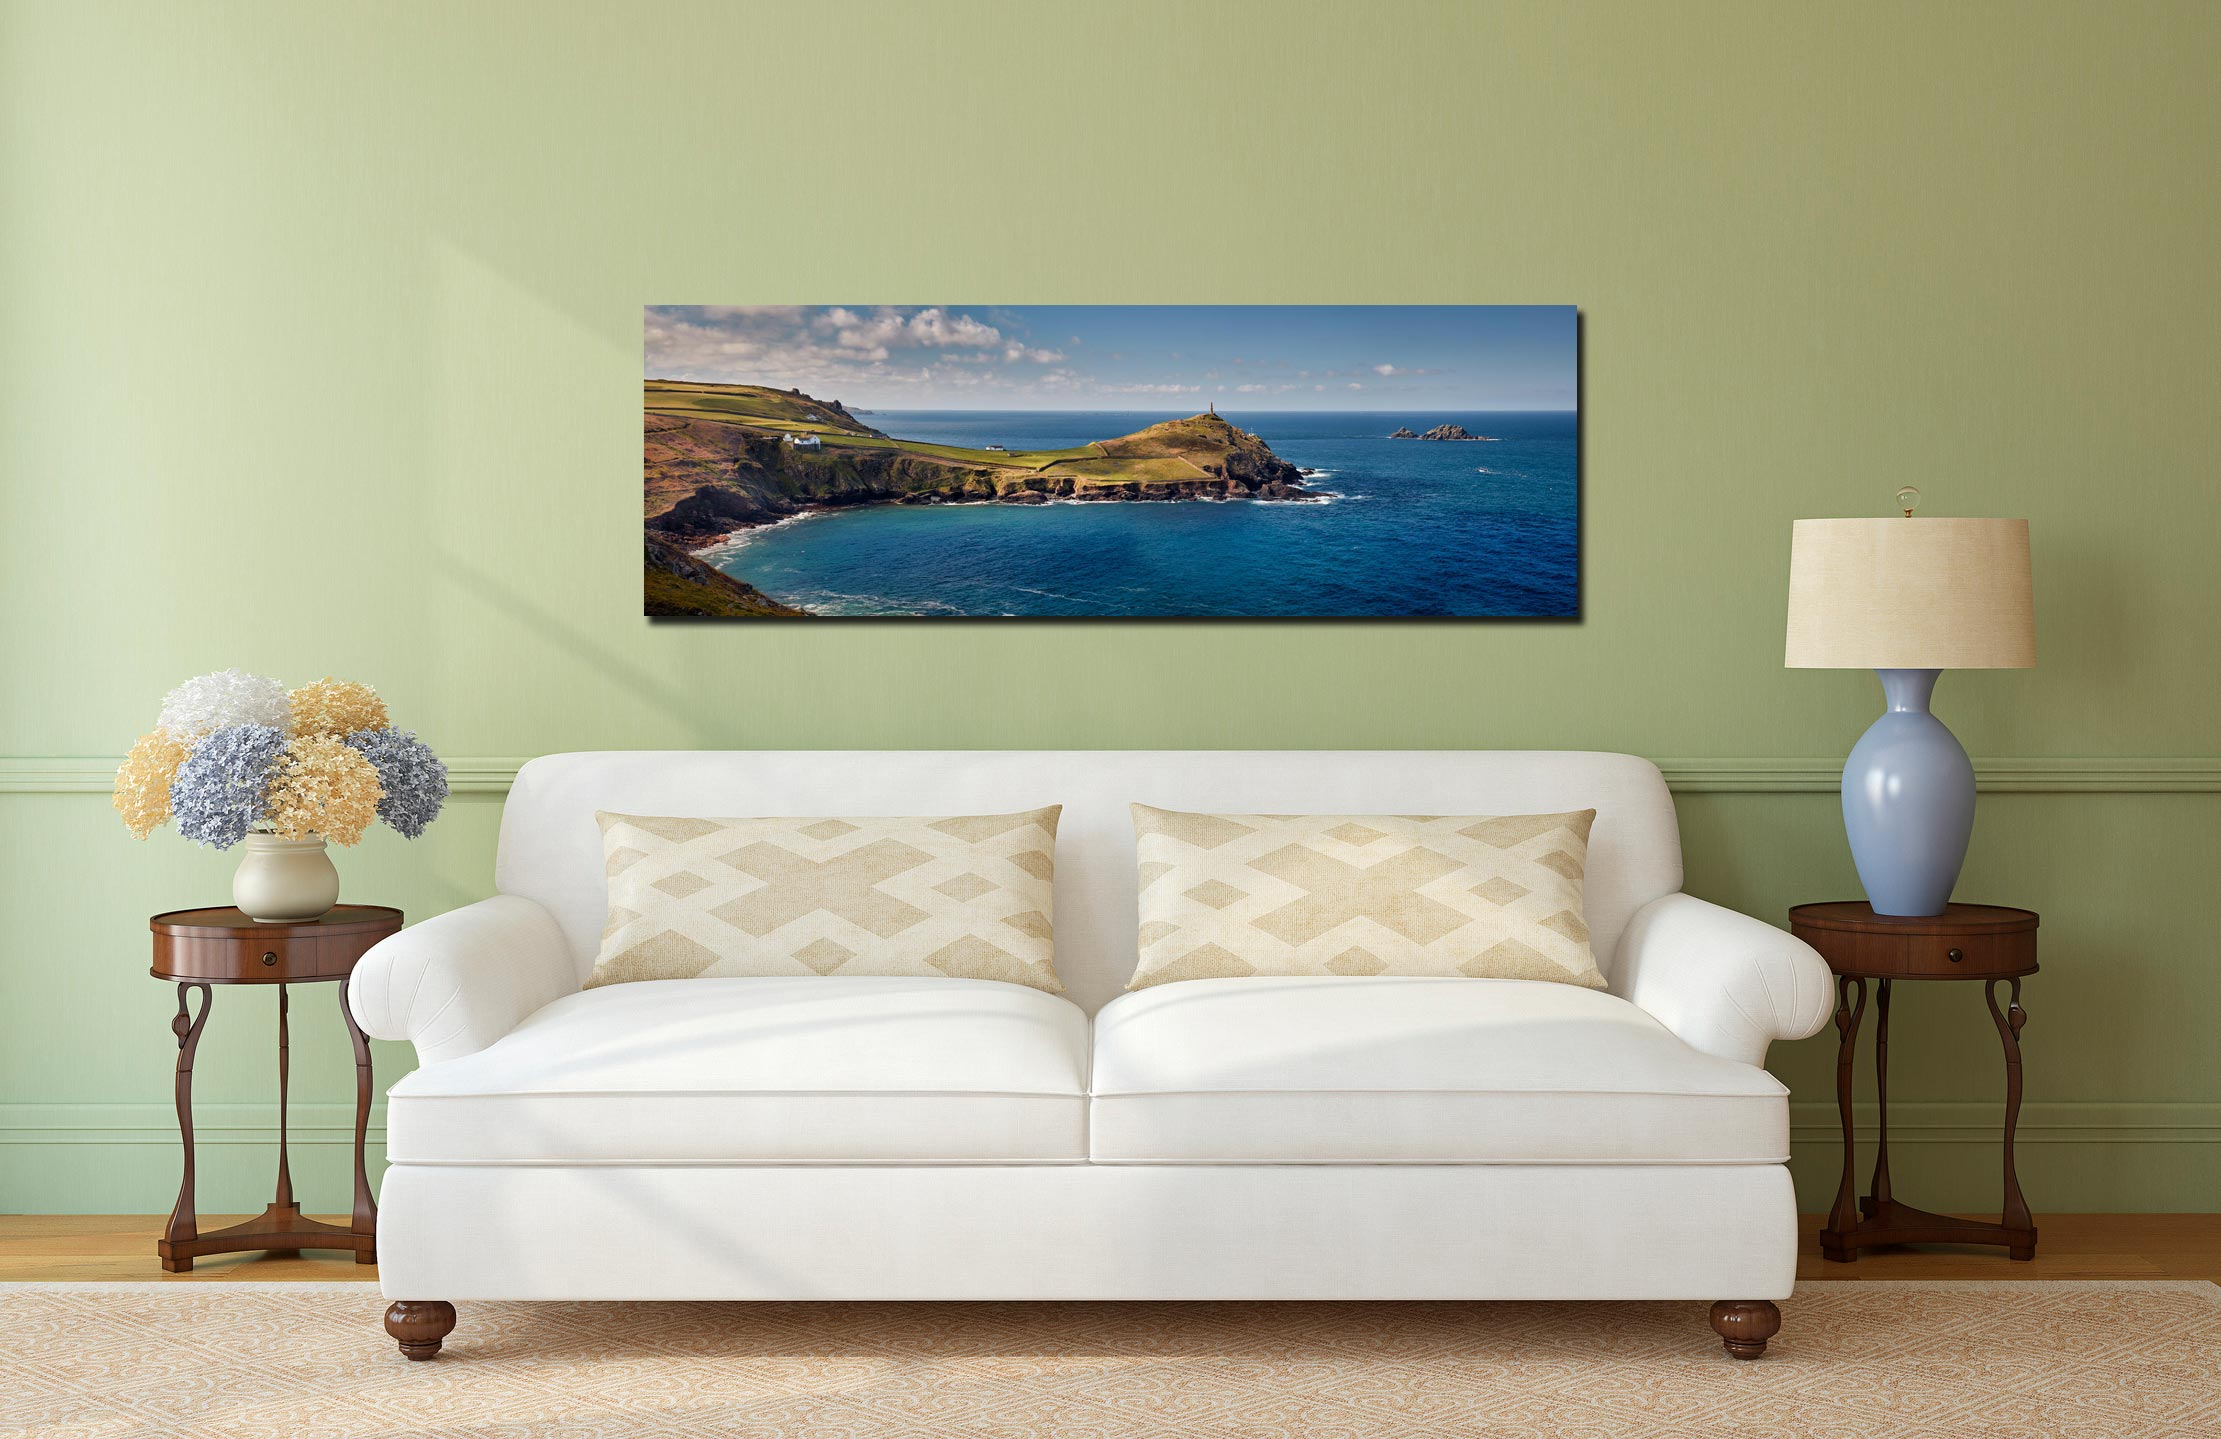 Cape Cornwall in the golden sunlight of a Spring morning - Print Aluminium Backing With Acrylic Glazing on Wall